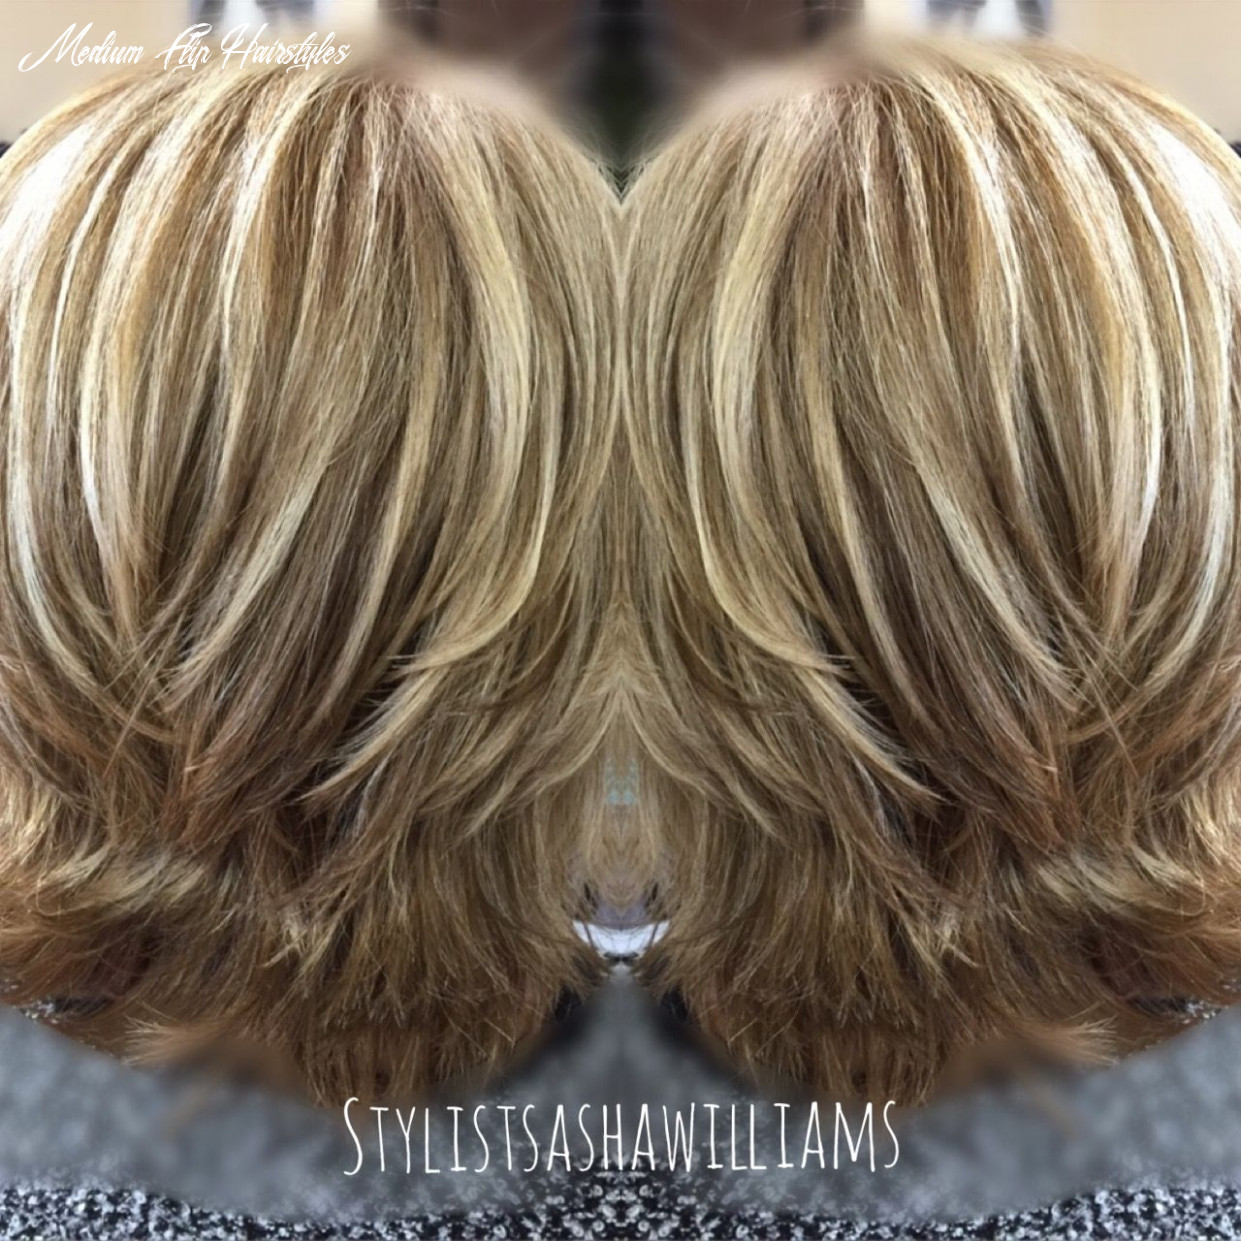 Modern flip hairstyle with blonde highlights very pretty | hair